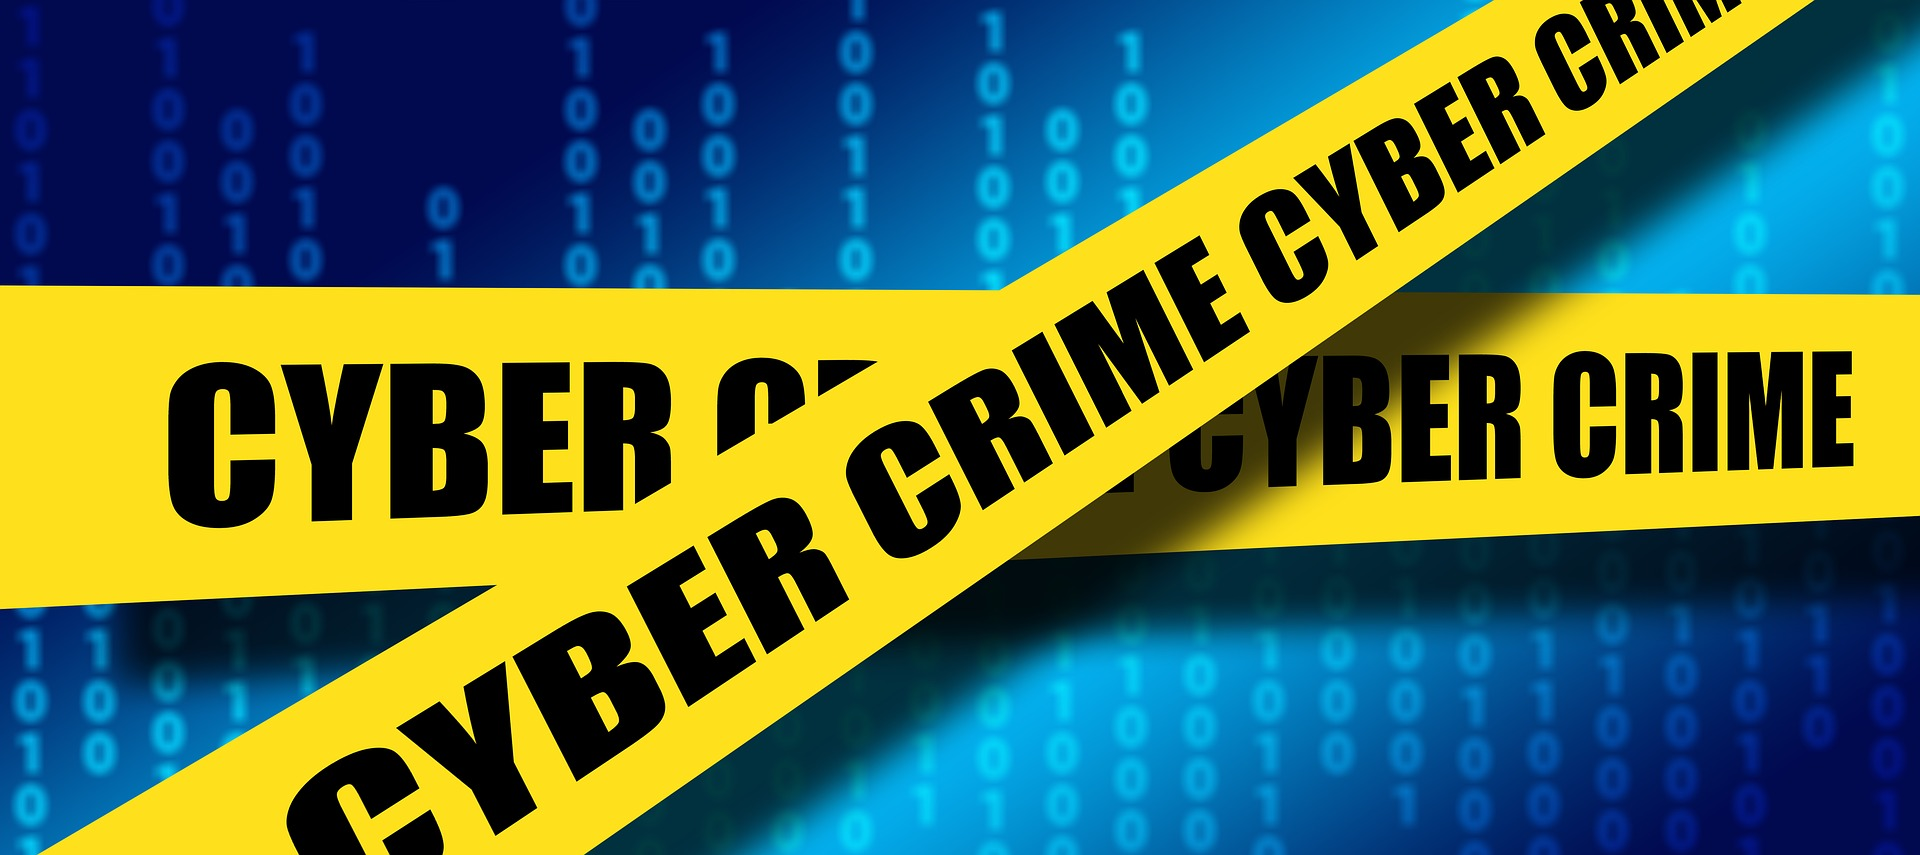 Ransomware Cyber Crime Banner